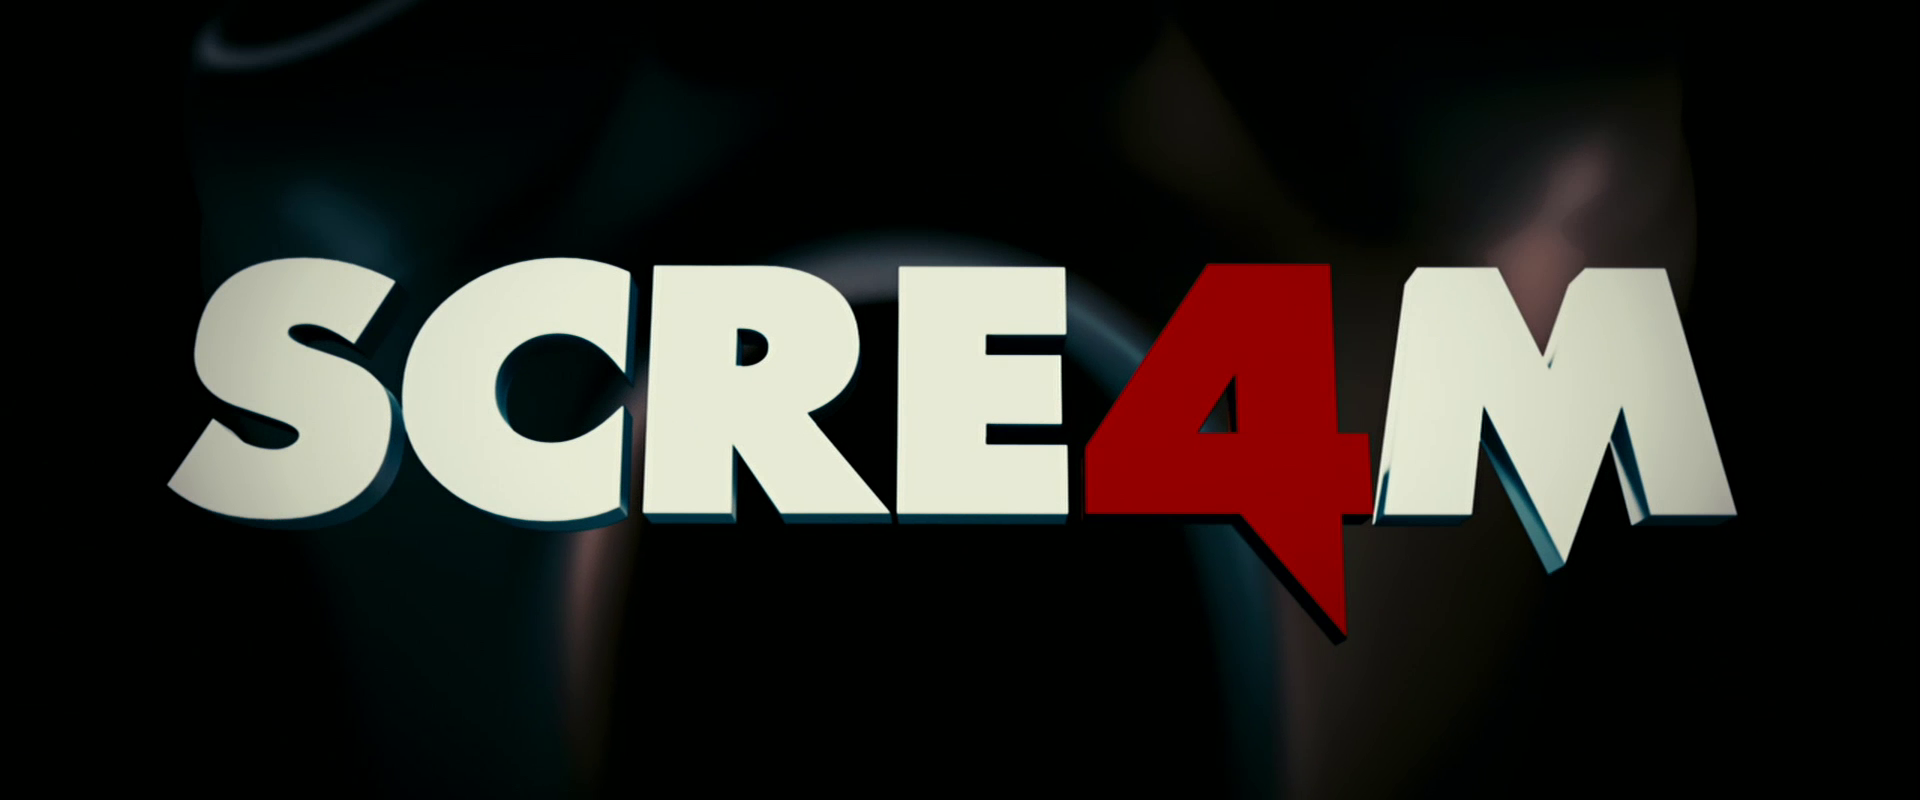 Scream 4 images Scre4m HD wallpaper and background photos (21287723)